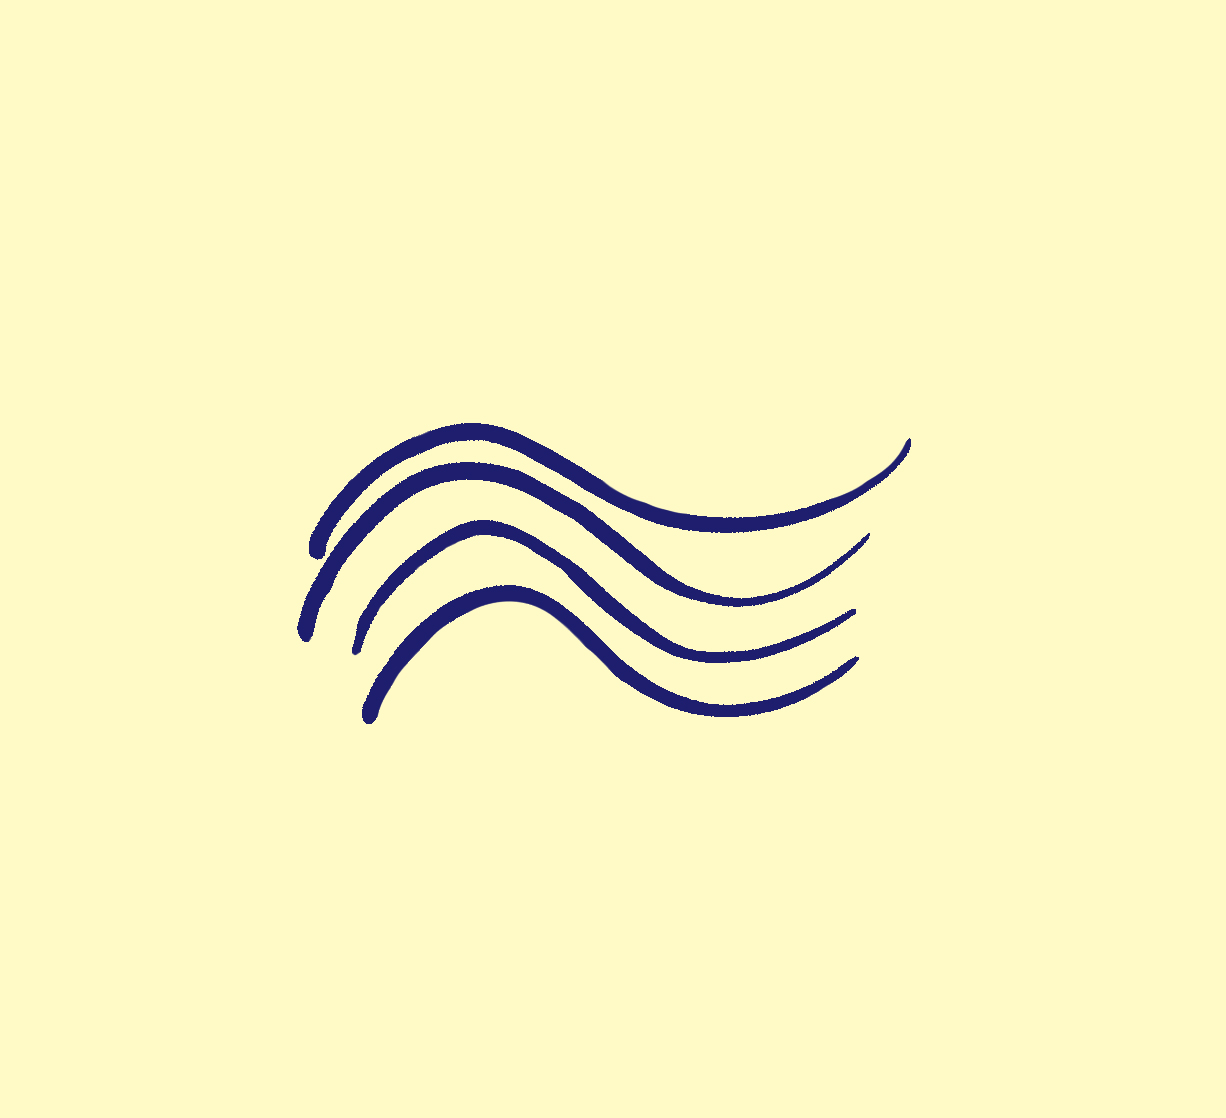 waves-caitlin james-graphics-creative.jpg